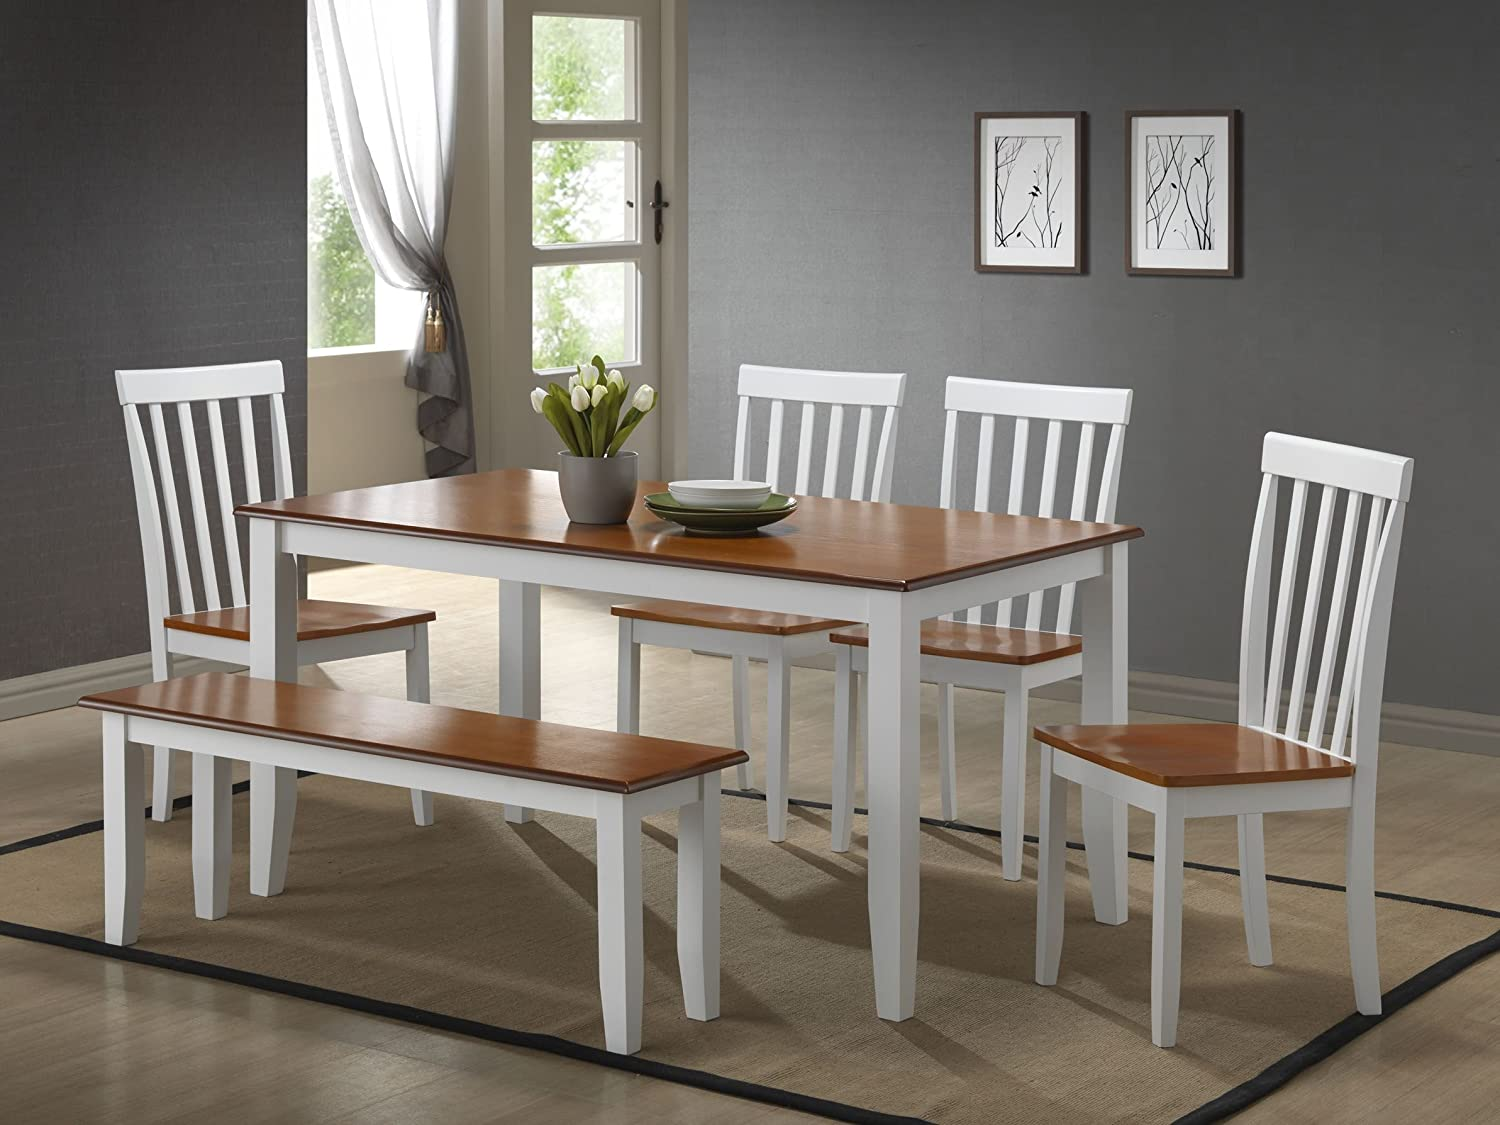 amazoncom boraam 22034 bloomington 6 piece dining room set whitehoney oak table chair sets